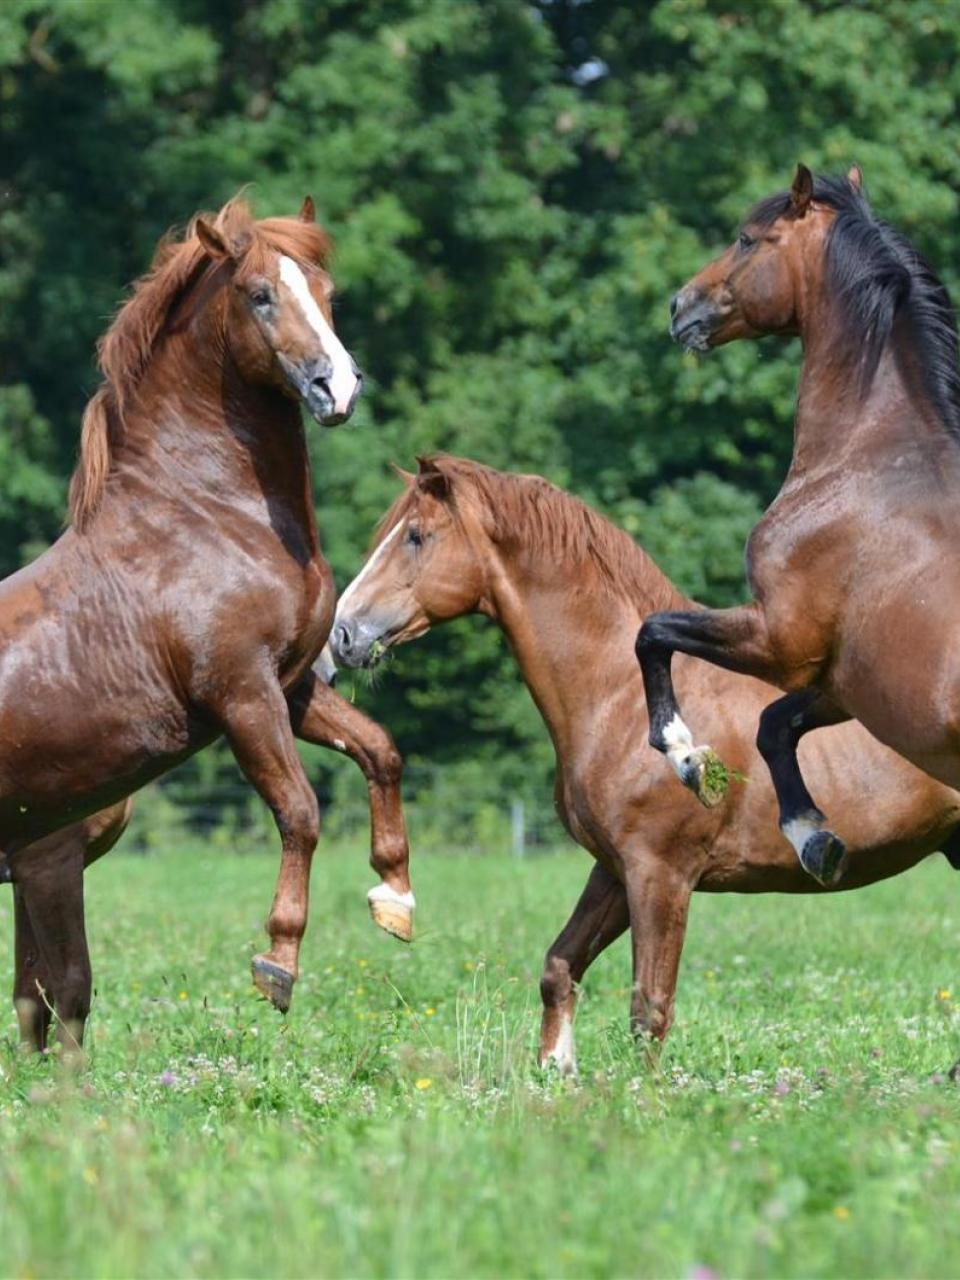 Stallions held in group on pasture